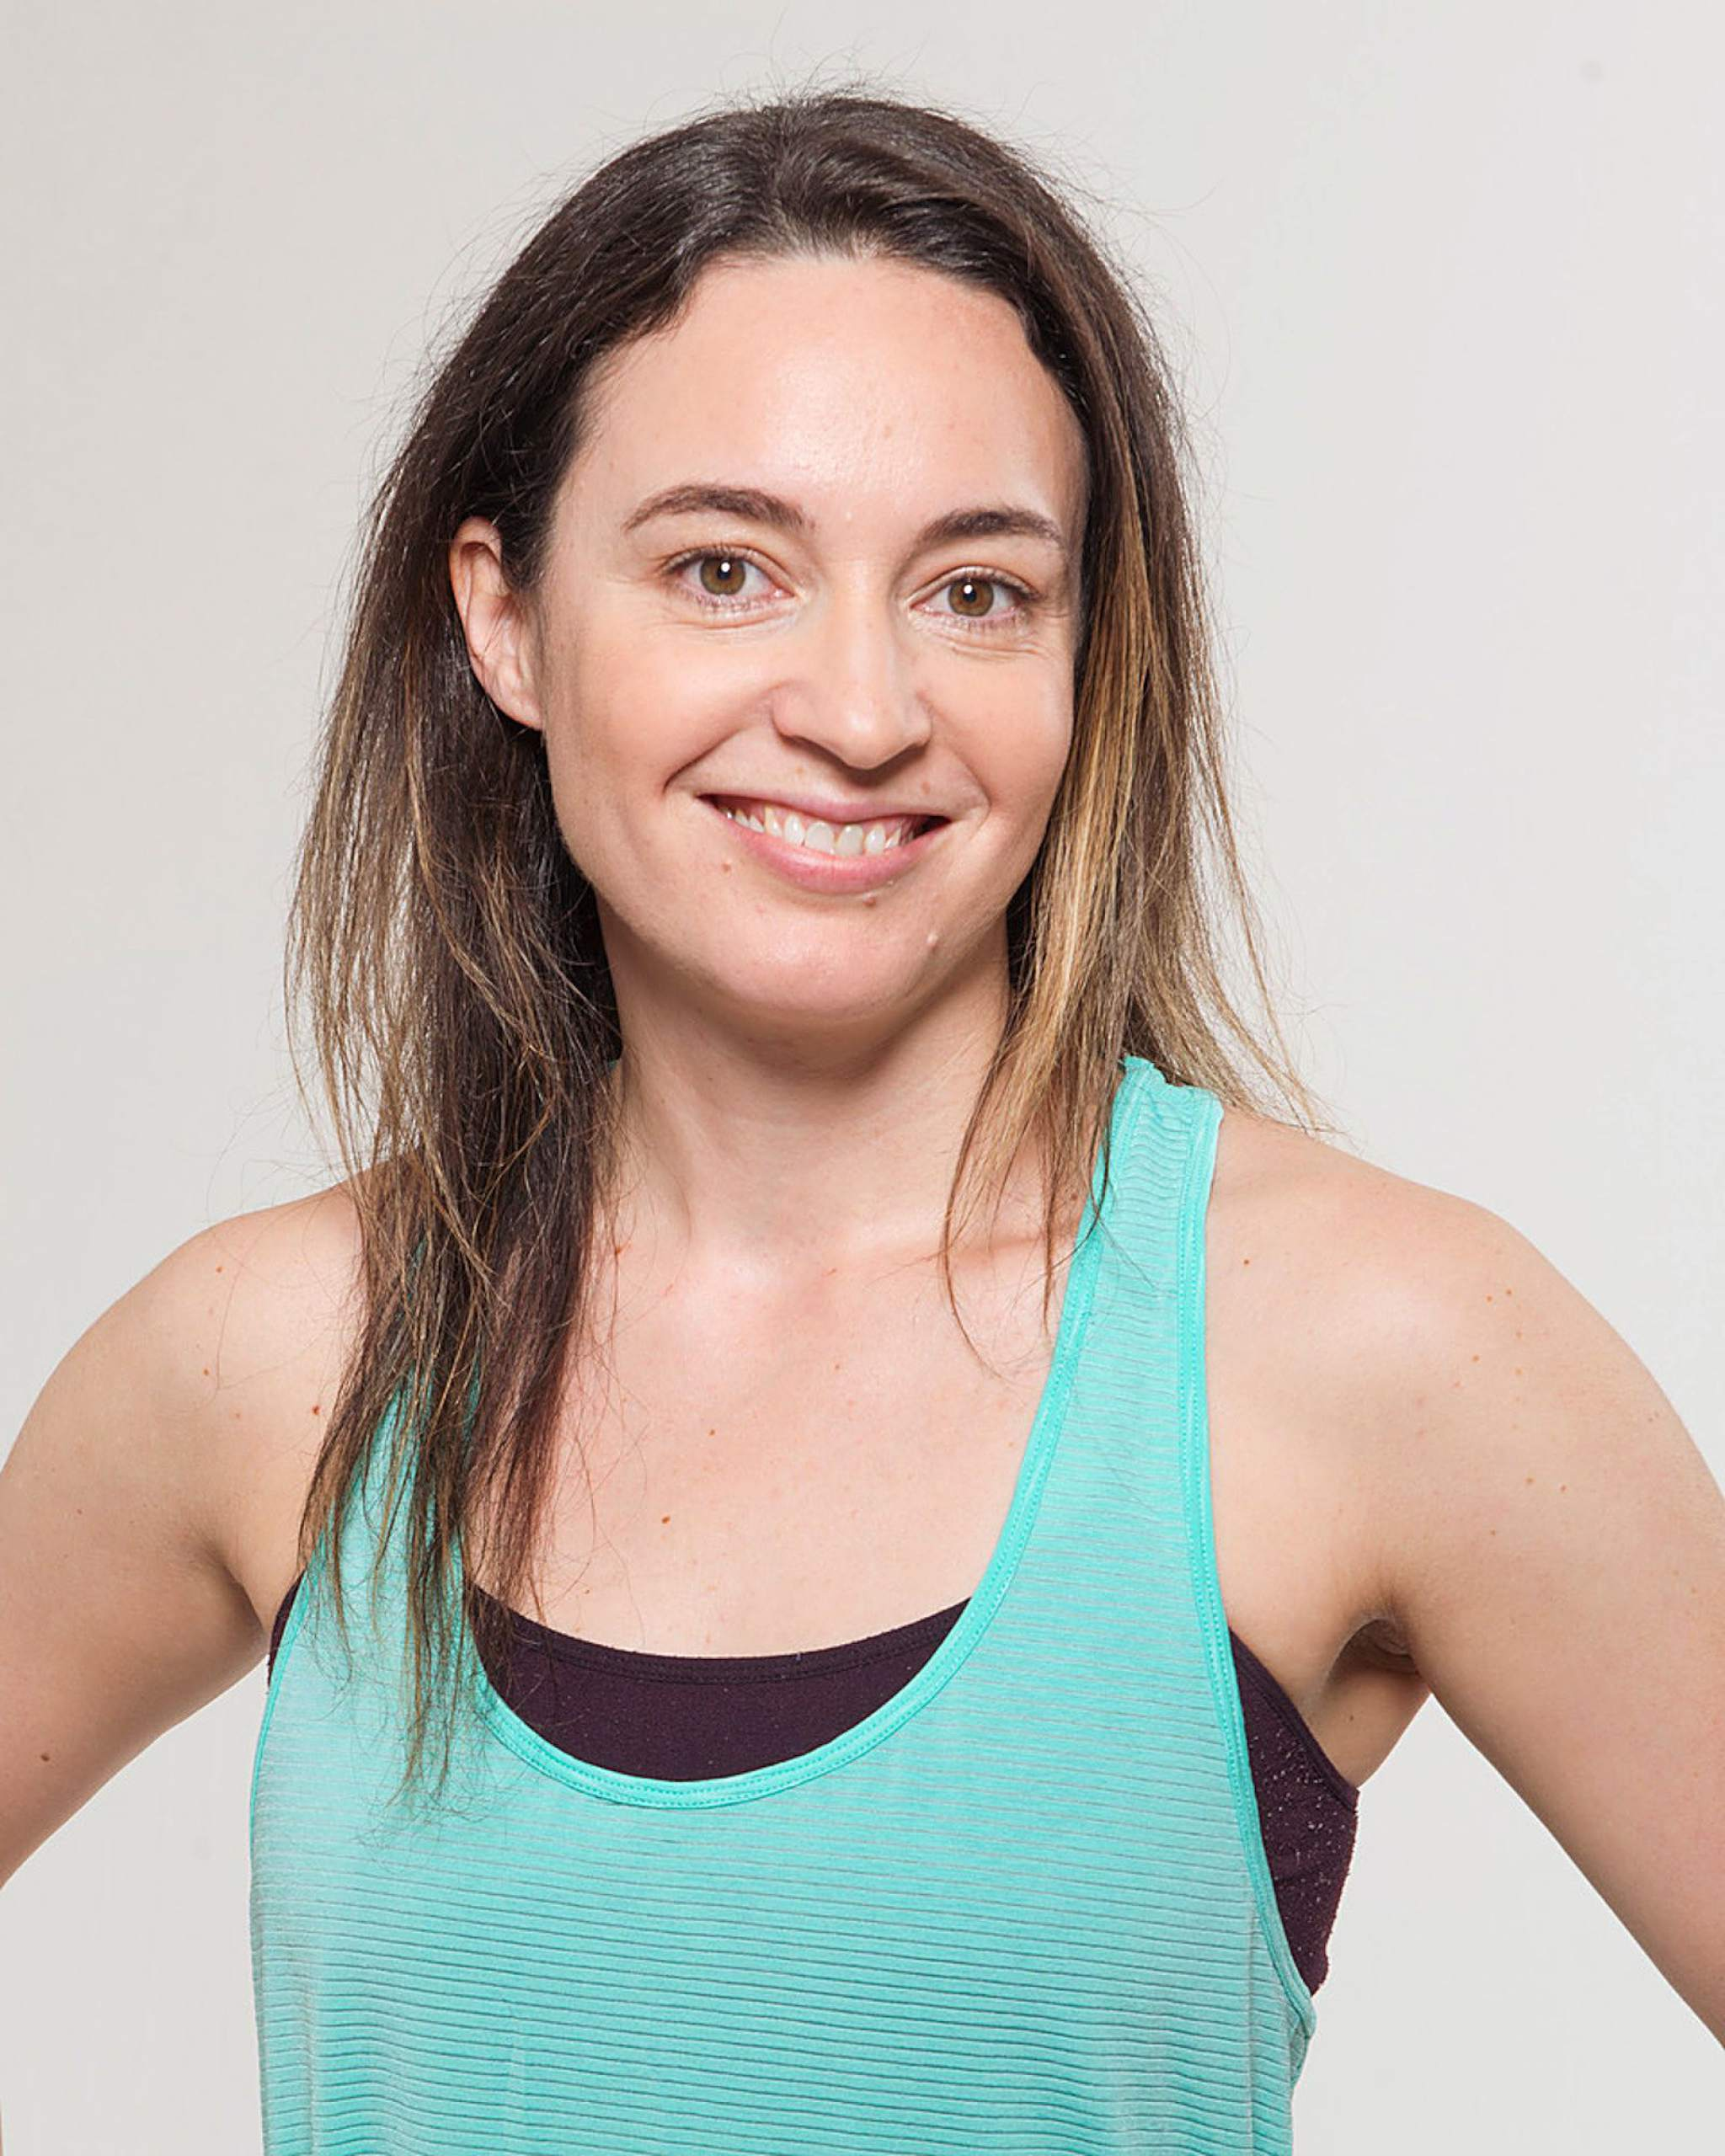 Local yoga teacher shares techniques for restorative practice at Bookworm event Tuesday